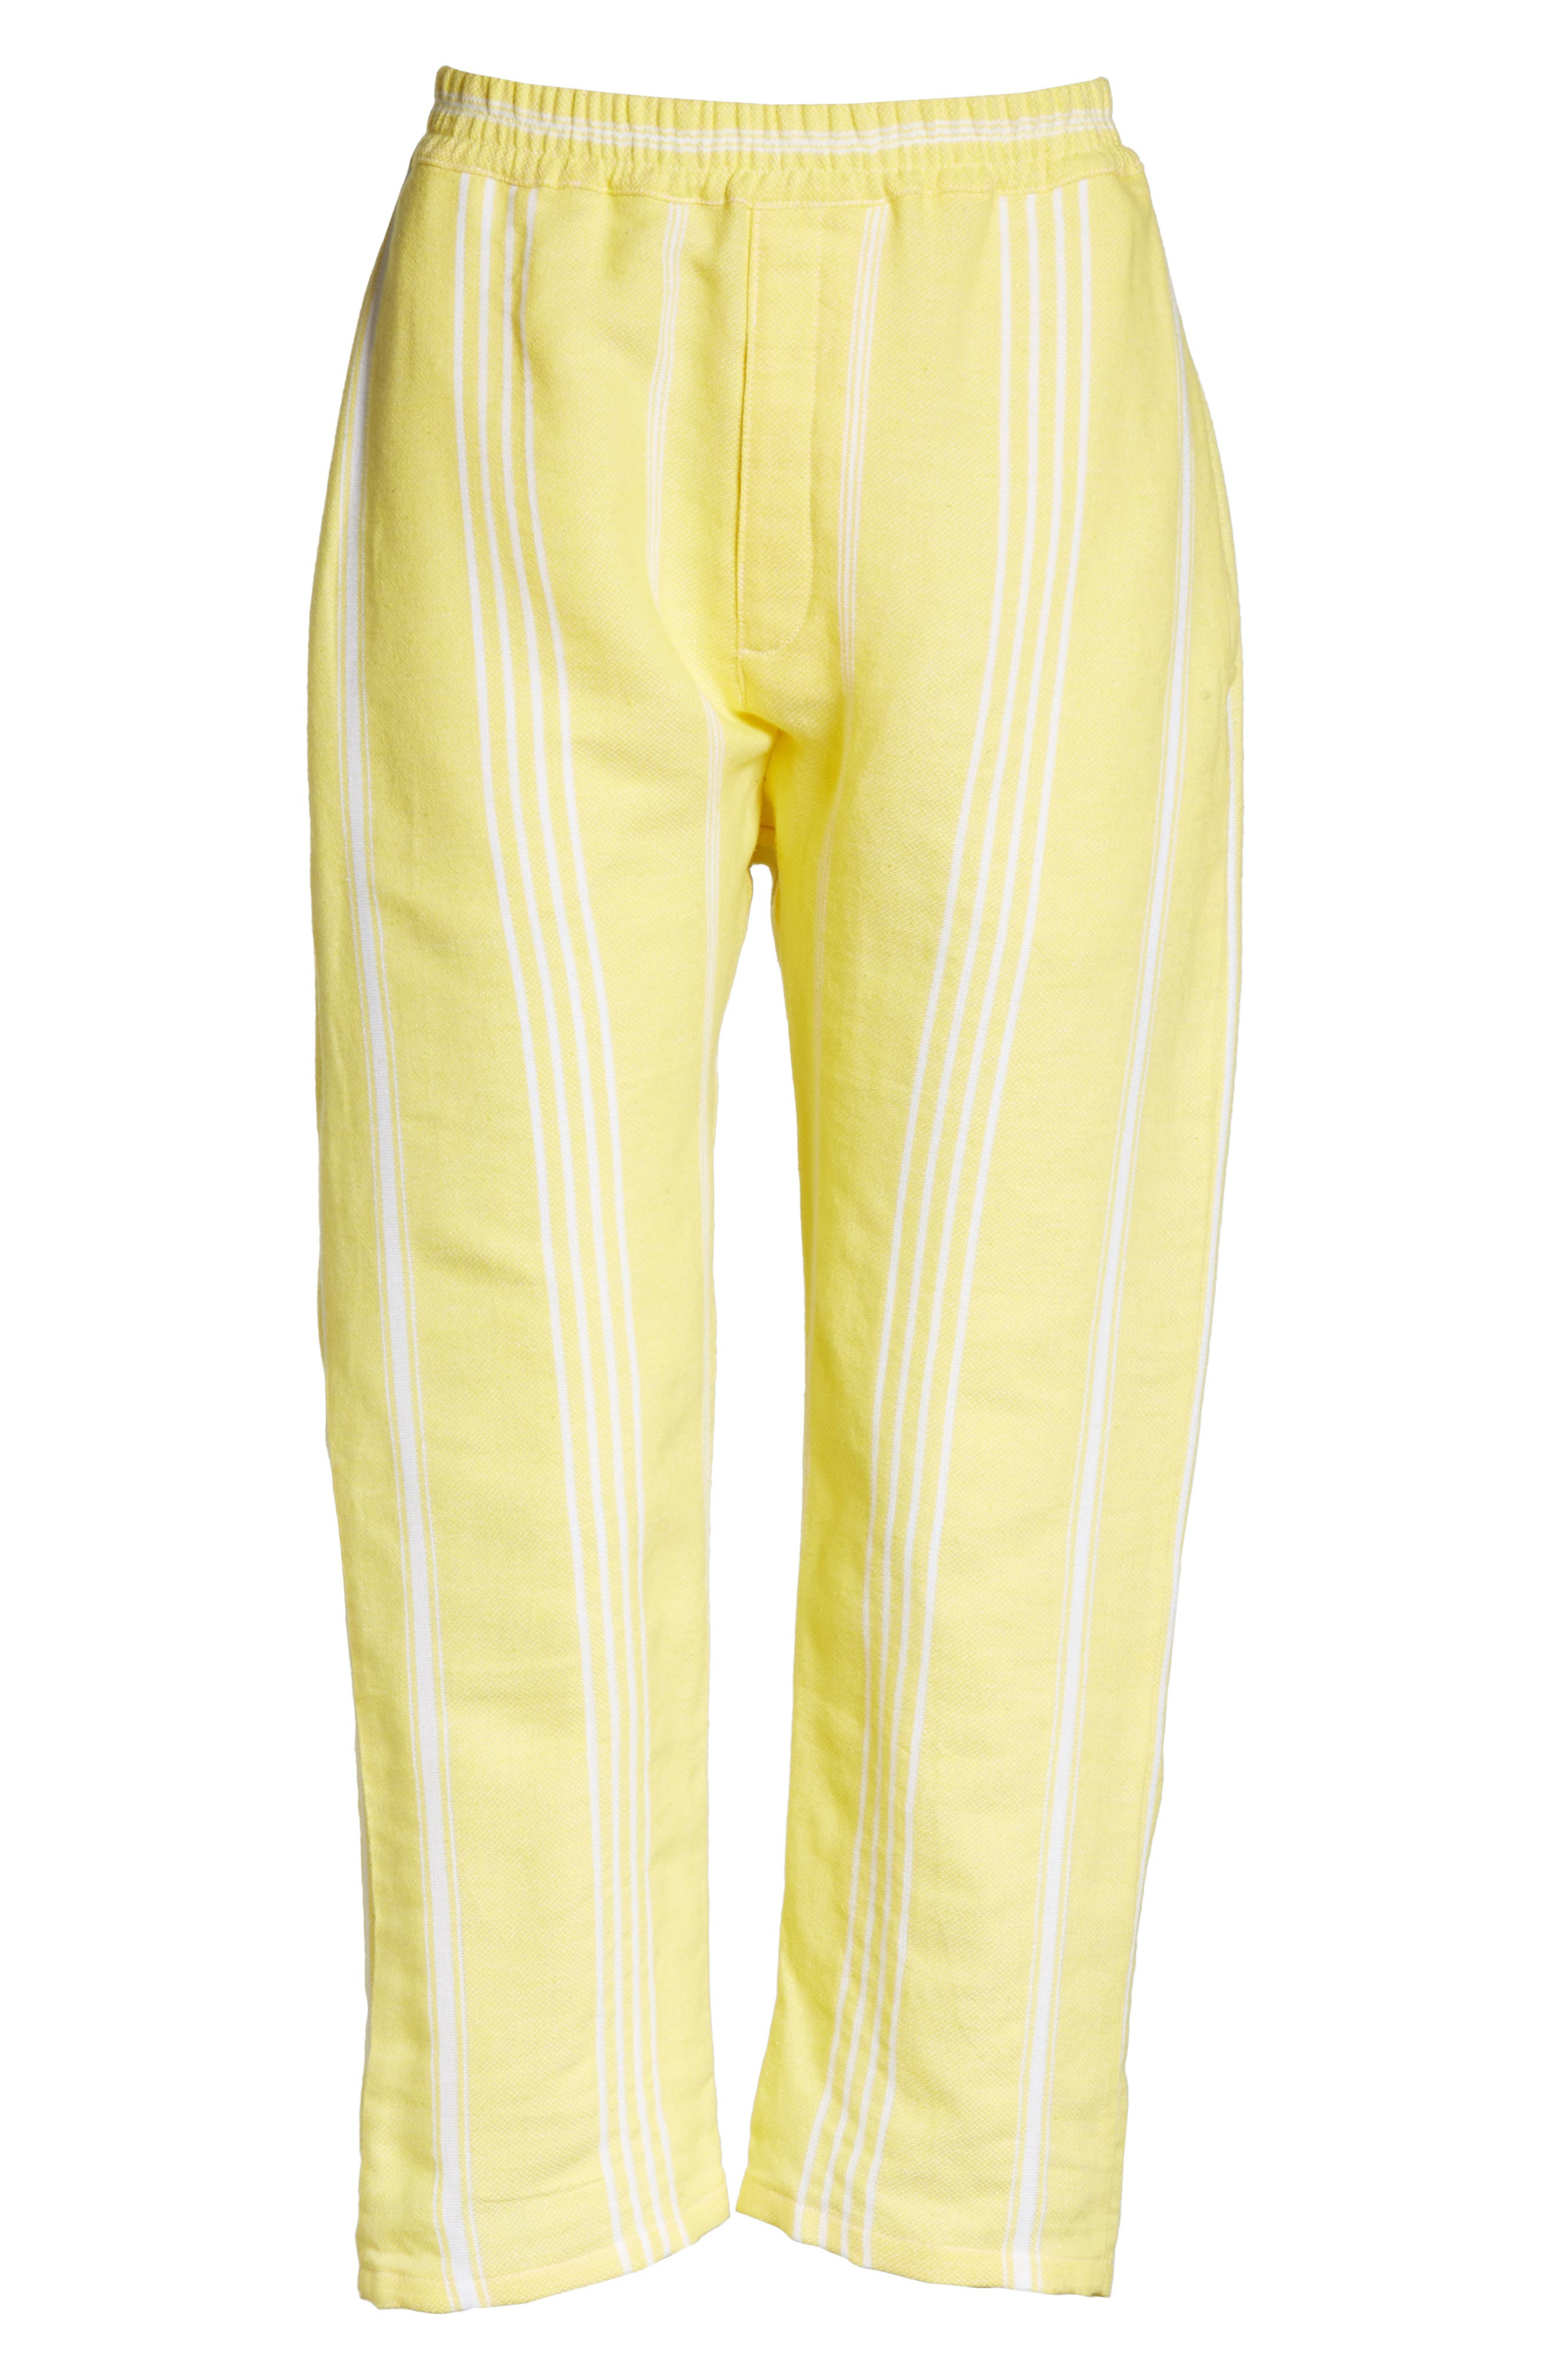 Stripe Cotton Beach Pants,                             Alternate thumbnail 6, color,                             Yellow